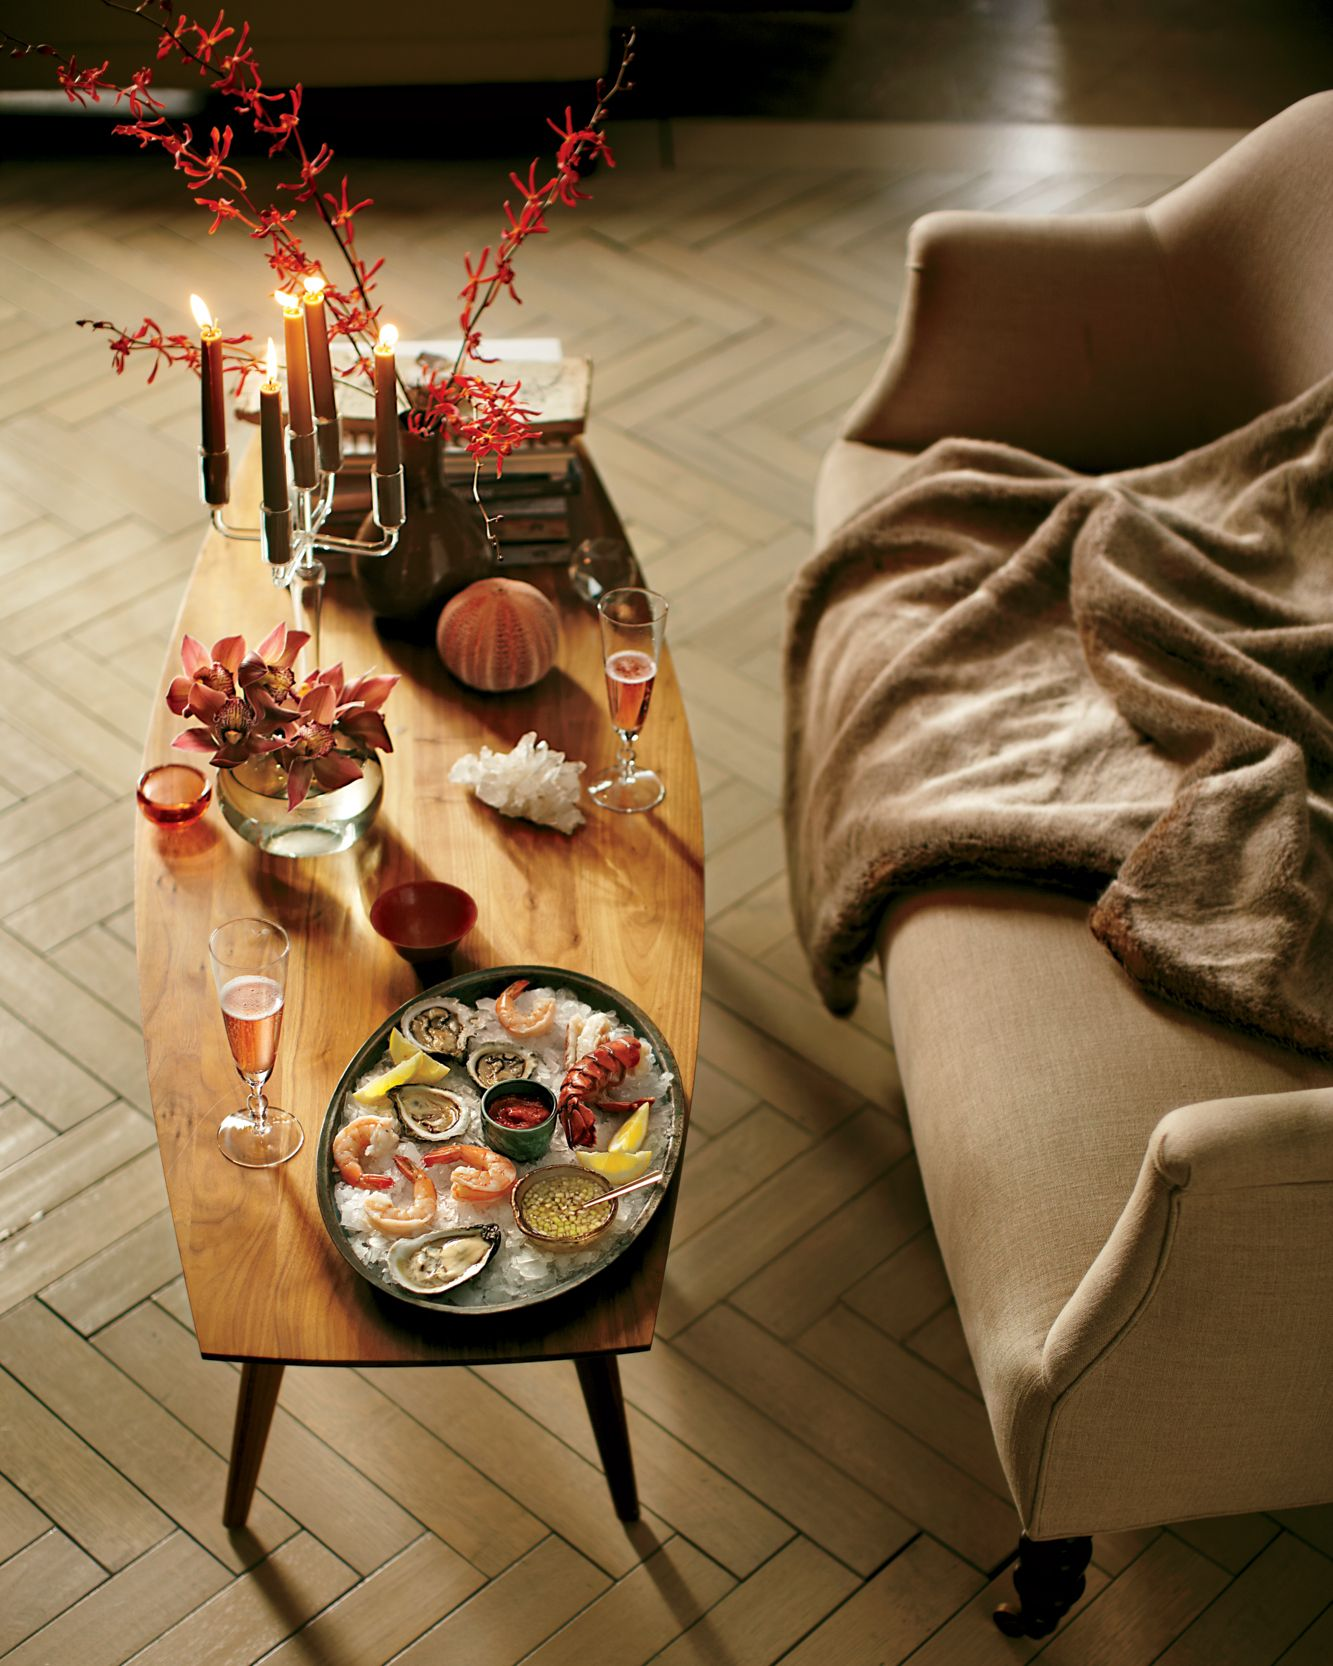 Coffee Table For Two Romantic Table Setting Valentines Day Dinner Romantic Date Night Ideas